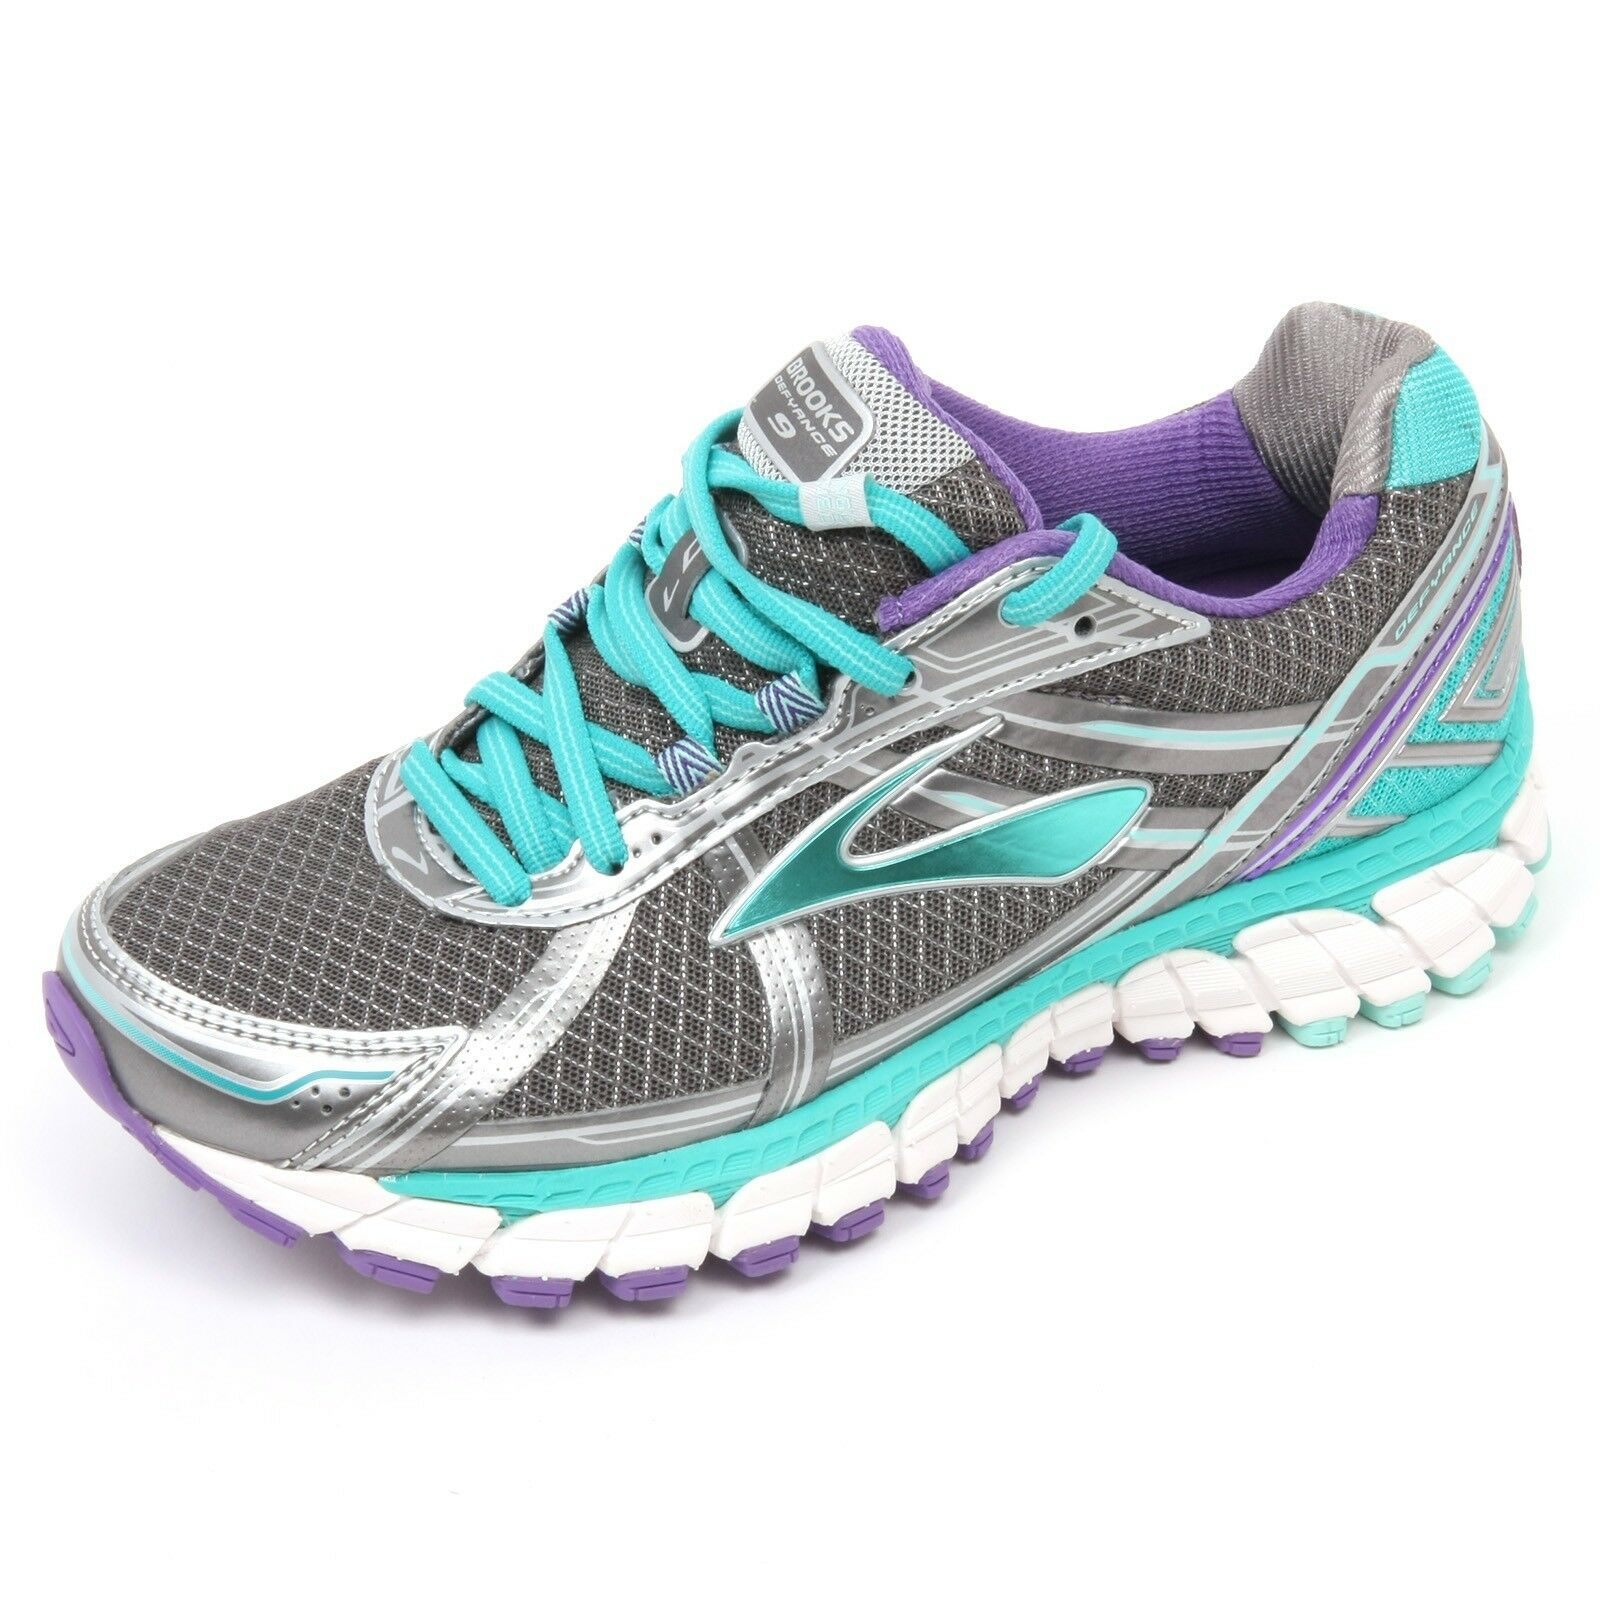 C5600 tenis mujer Brooks DEFYANCE 9 Scarpa gris Zapato Mujer Mujer Mujer  tiempo libre